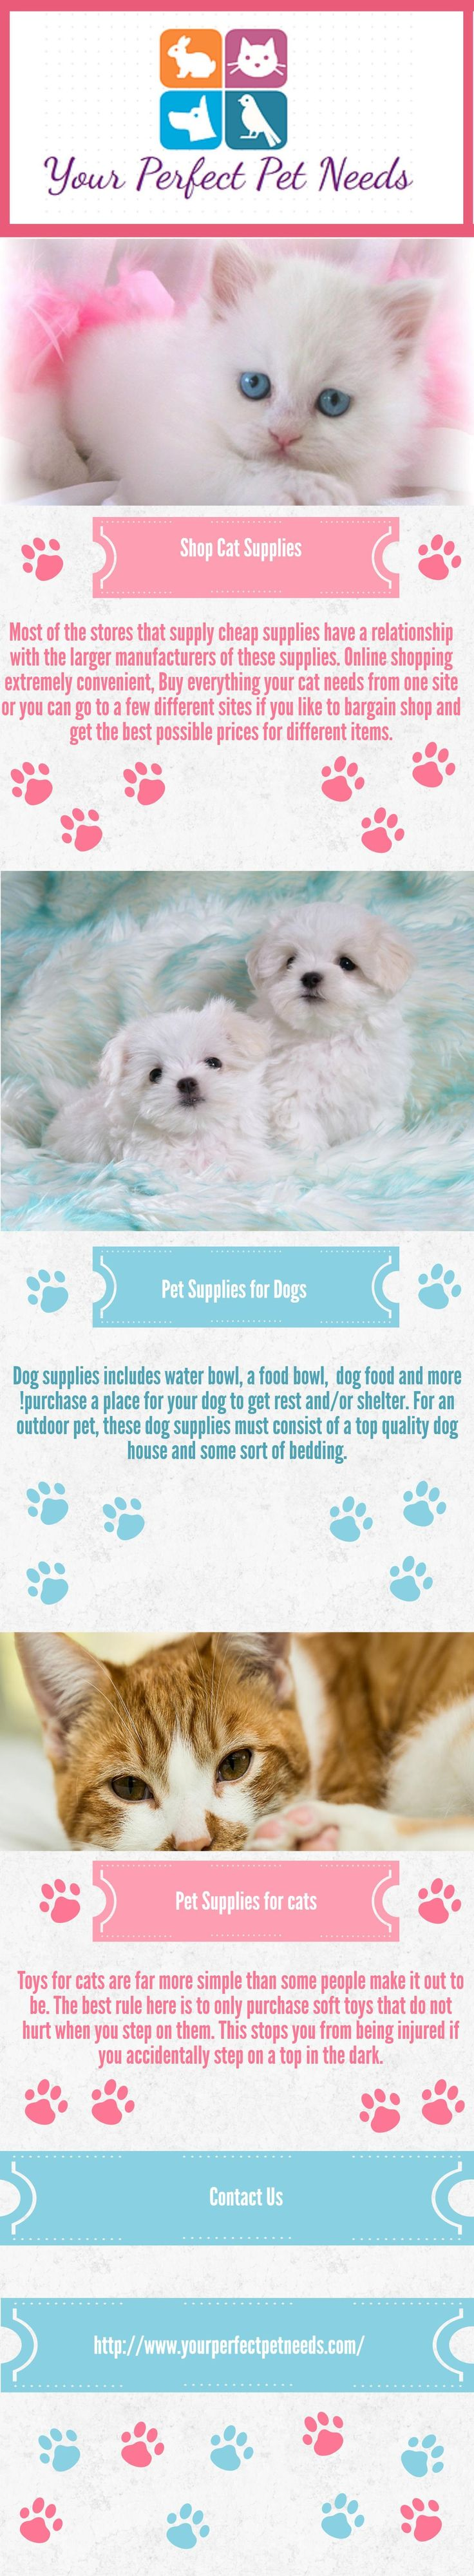 Our web store is your number one source for great priced dog supplies & products.Take a look on Pet Supplies for Dogs. Nowadays, you can get all the pet supplies online easily at discount prices.